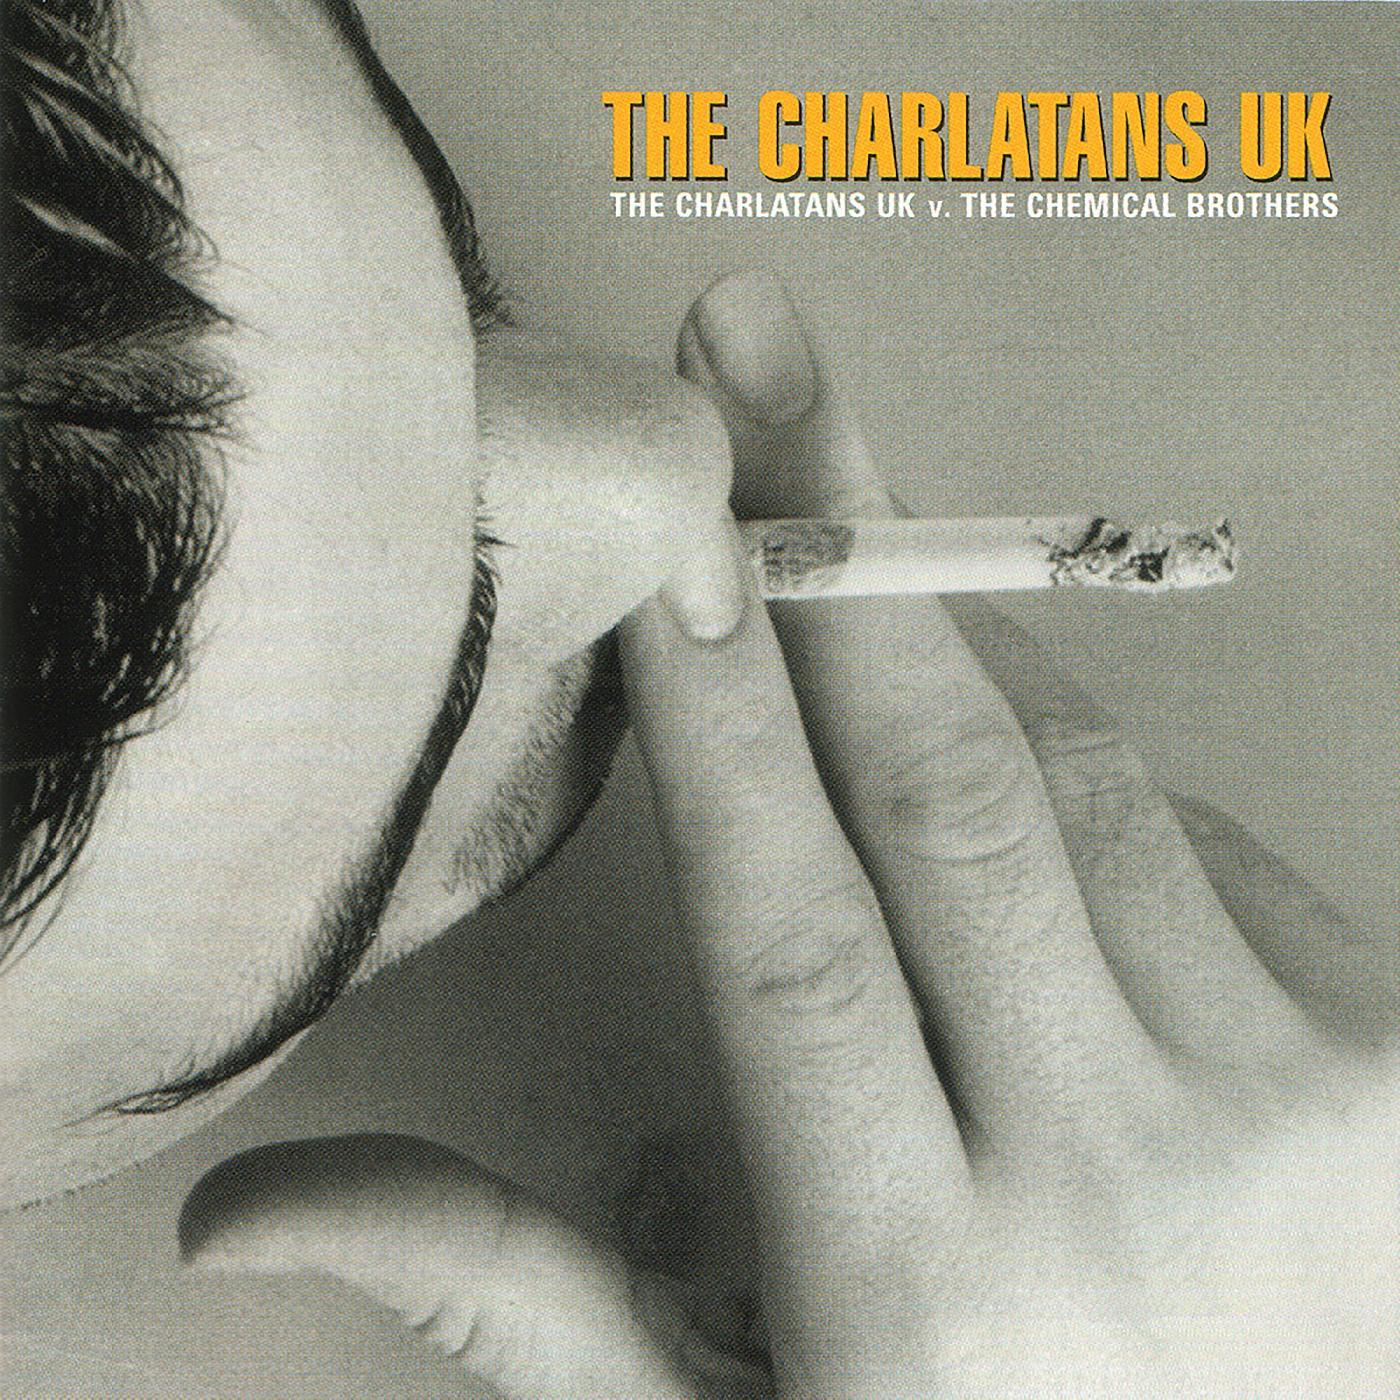 The Charlatans UK - The Charlatans UK vs. The Chemical Brothers [RSD Drops Aug 2020]